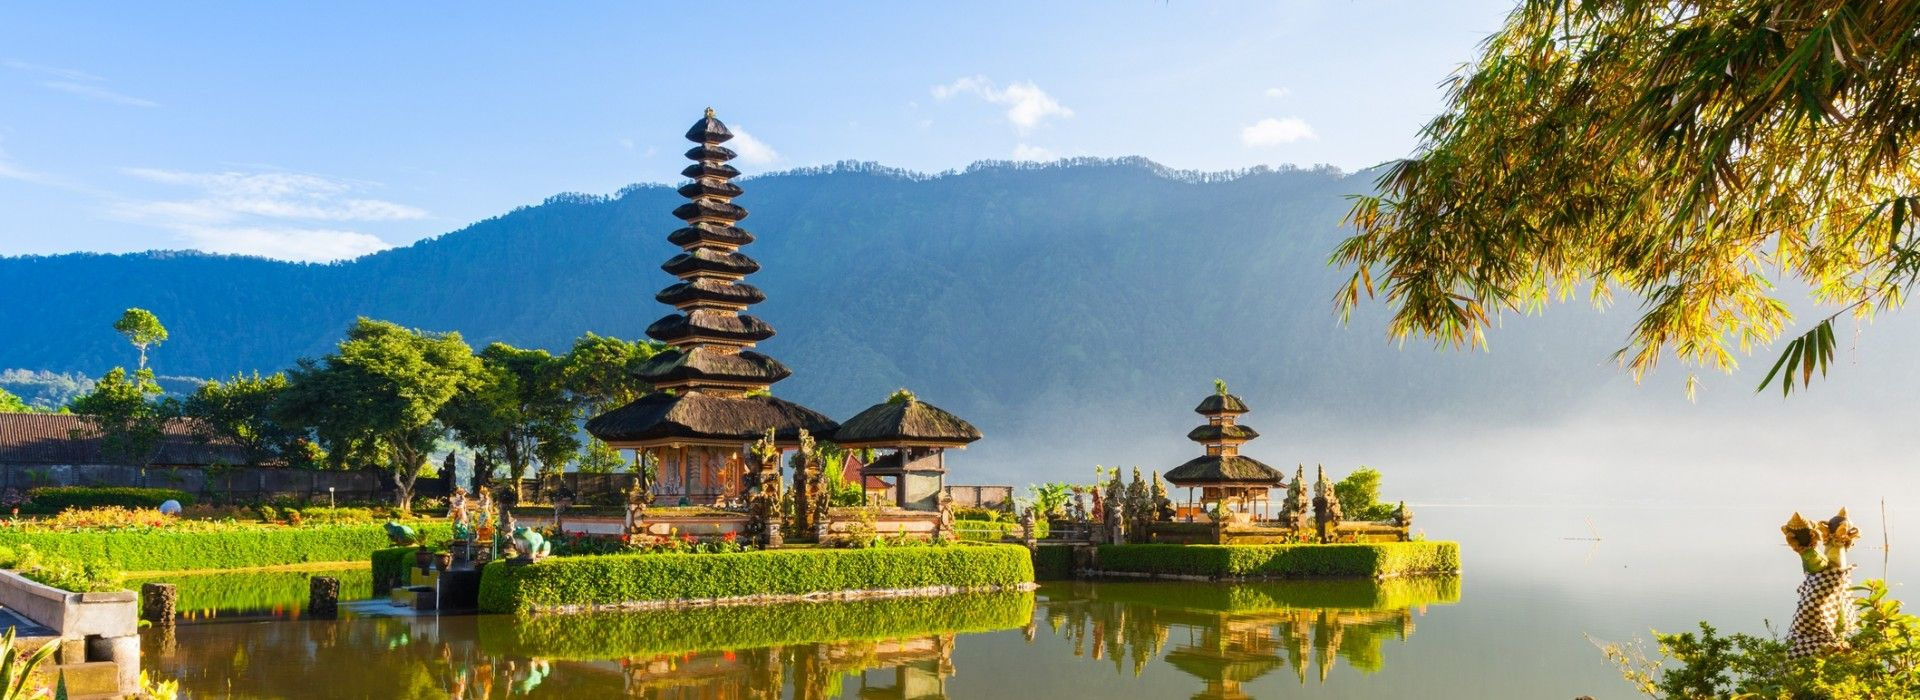 Countryside and village visits Tours in Kuta